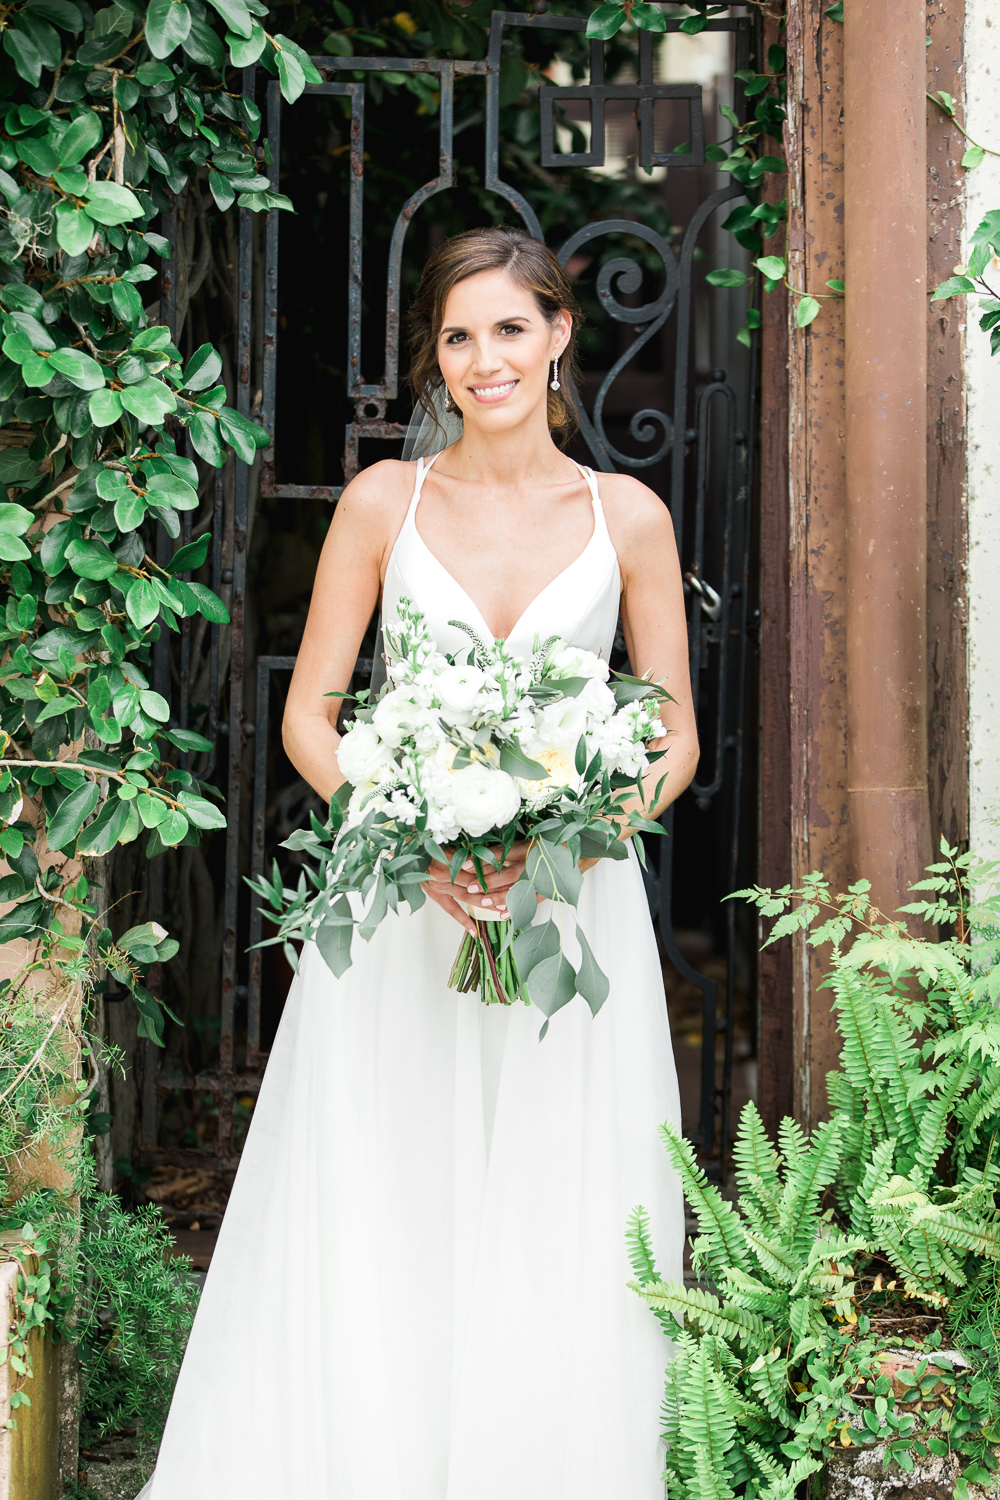 Bride in Essense of Australi dress from Love,A Bridal Boutique